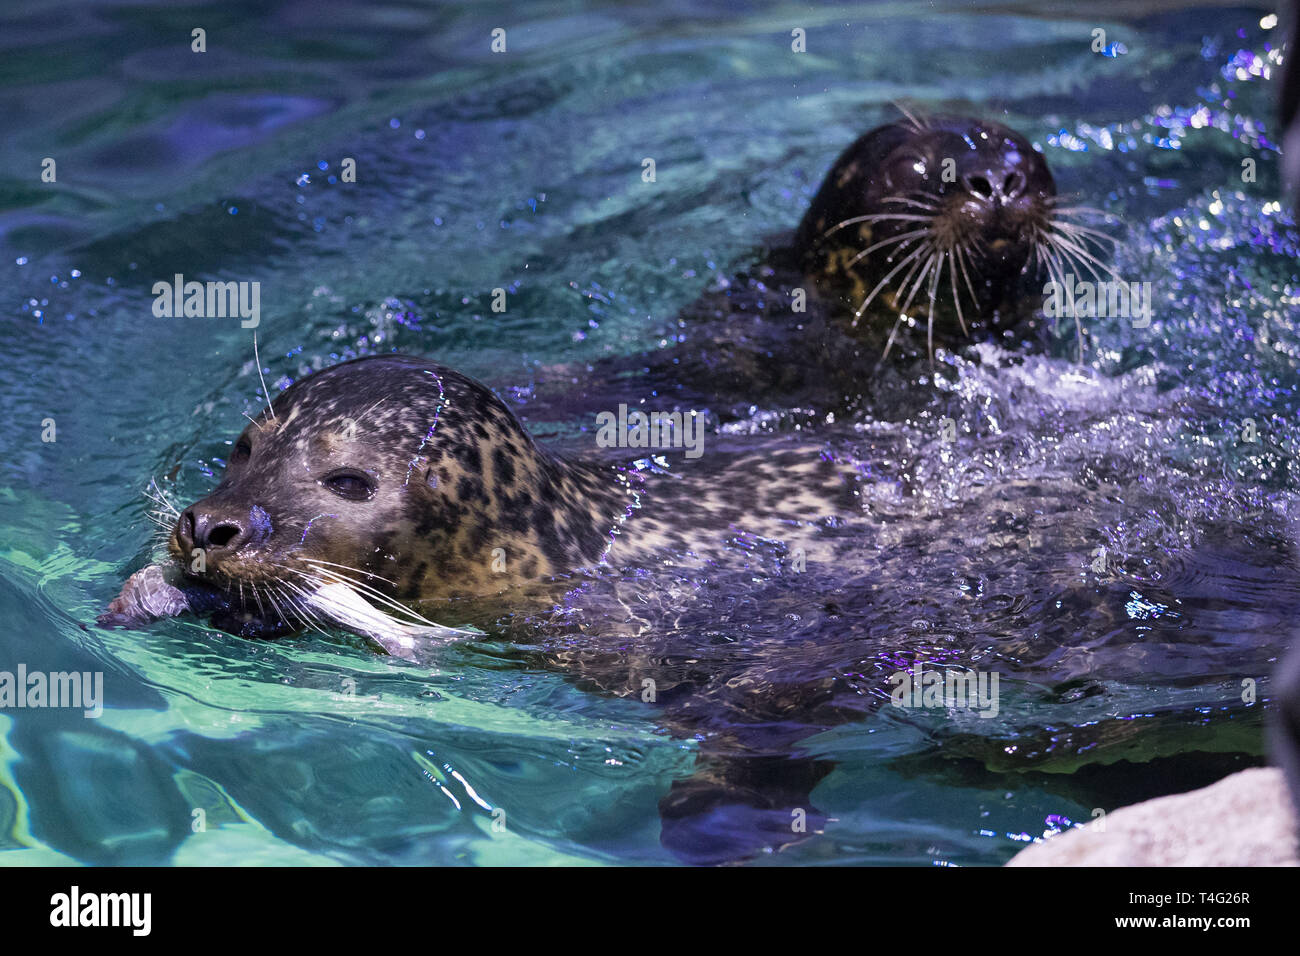 Seals Miley (left) and Boo, which have recently arrived at the new seal rescue facility at the National Sea Life Centre Birmingham. - Stock Image